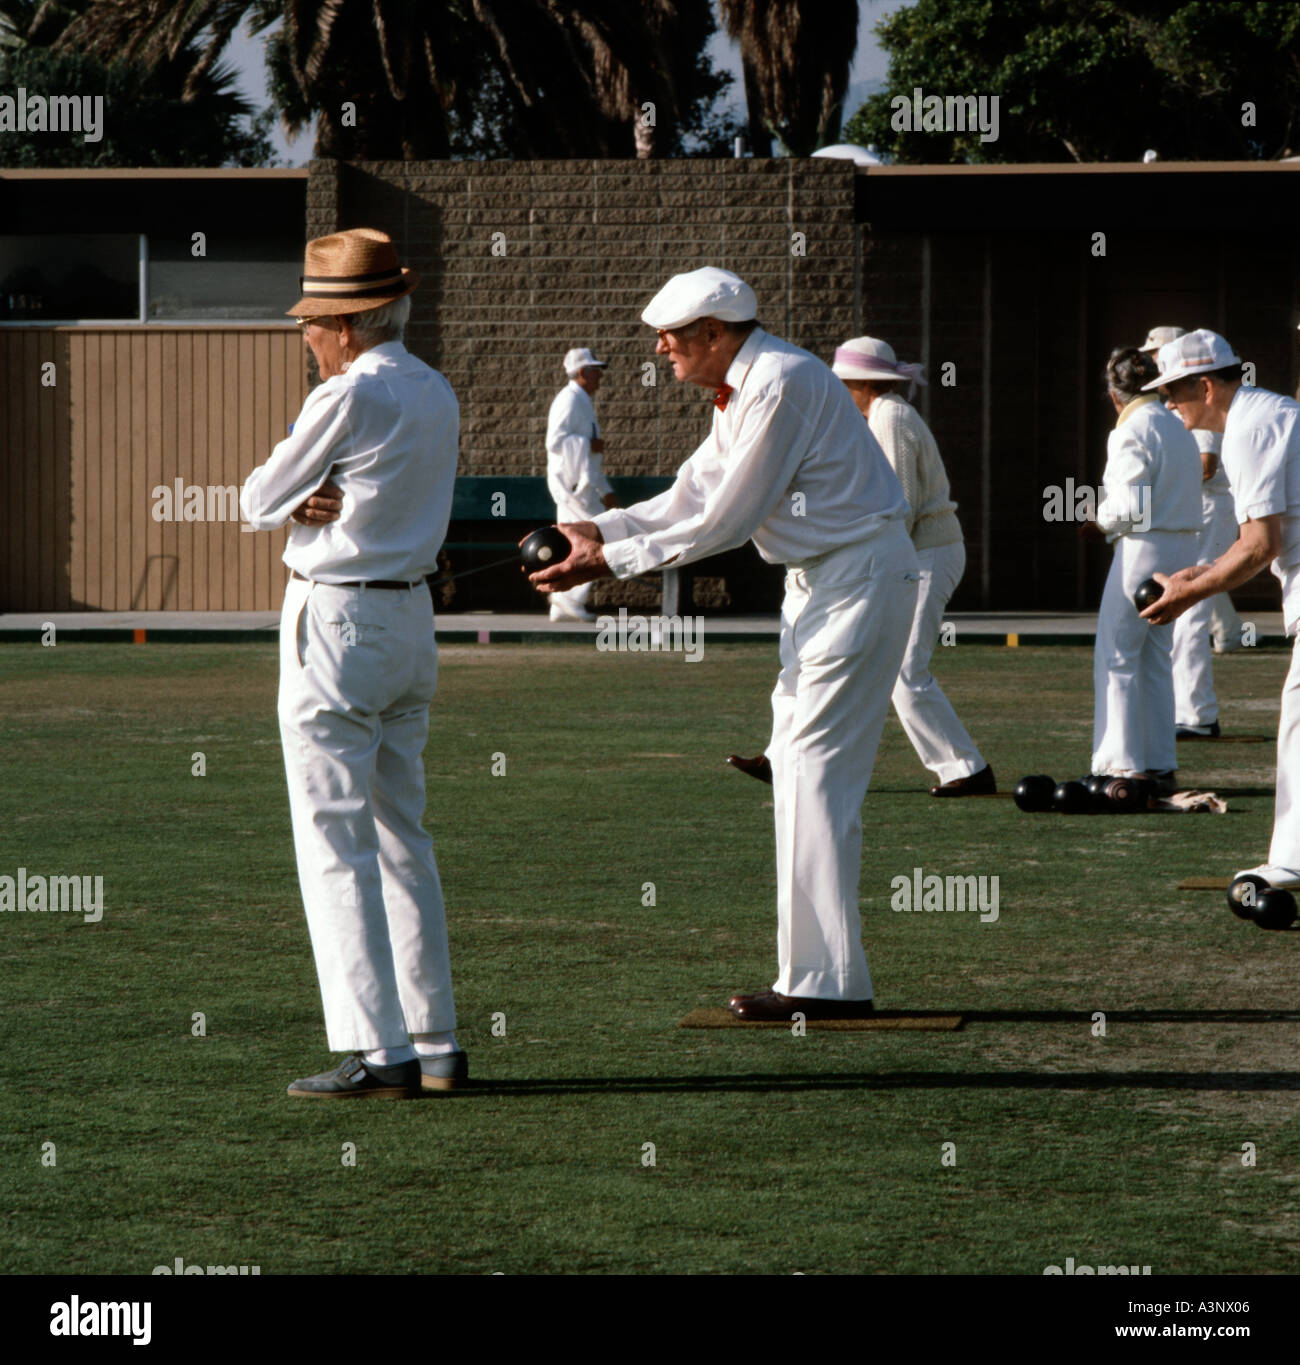 Lawn bowlers enjoying an afternoon of entertainment at Laguna Beach in Southern California - Stock Image